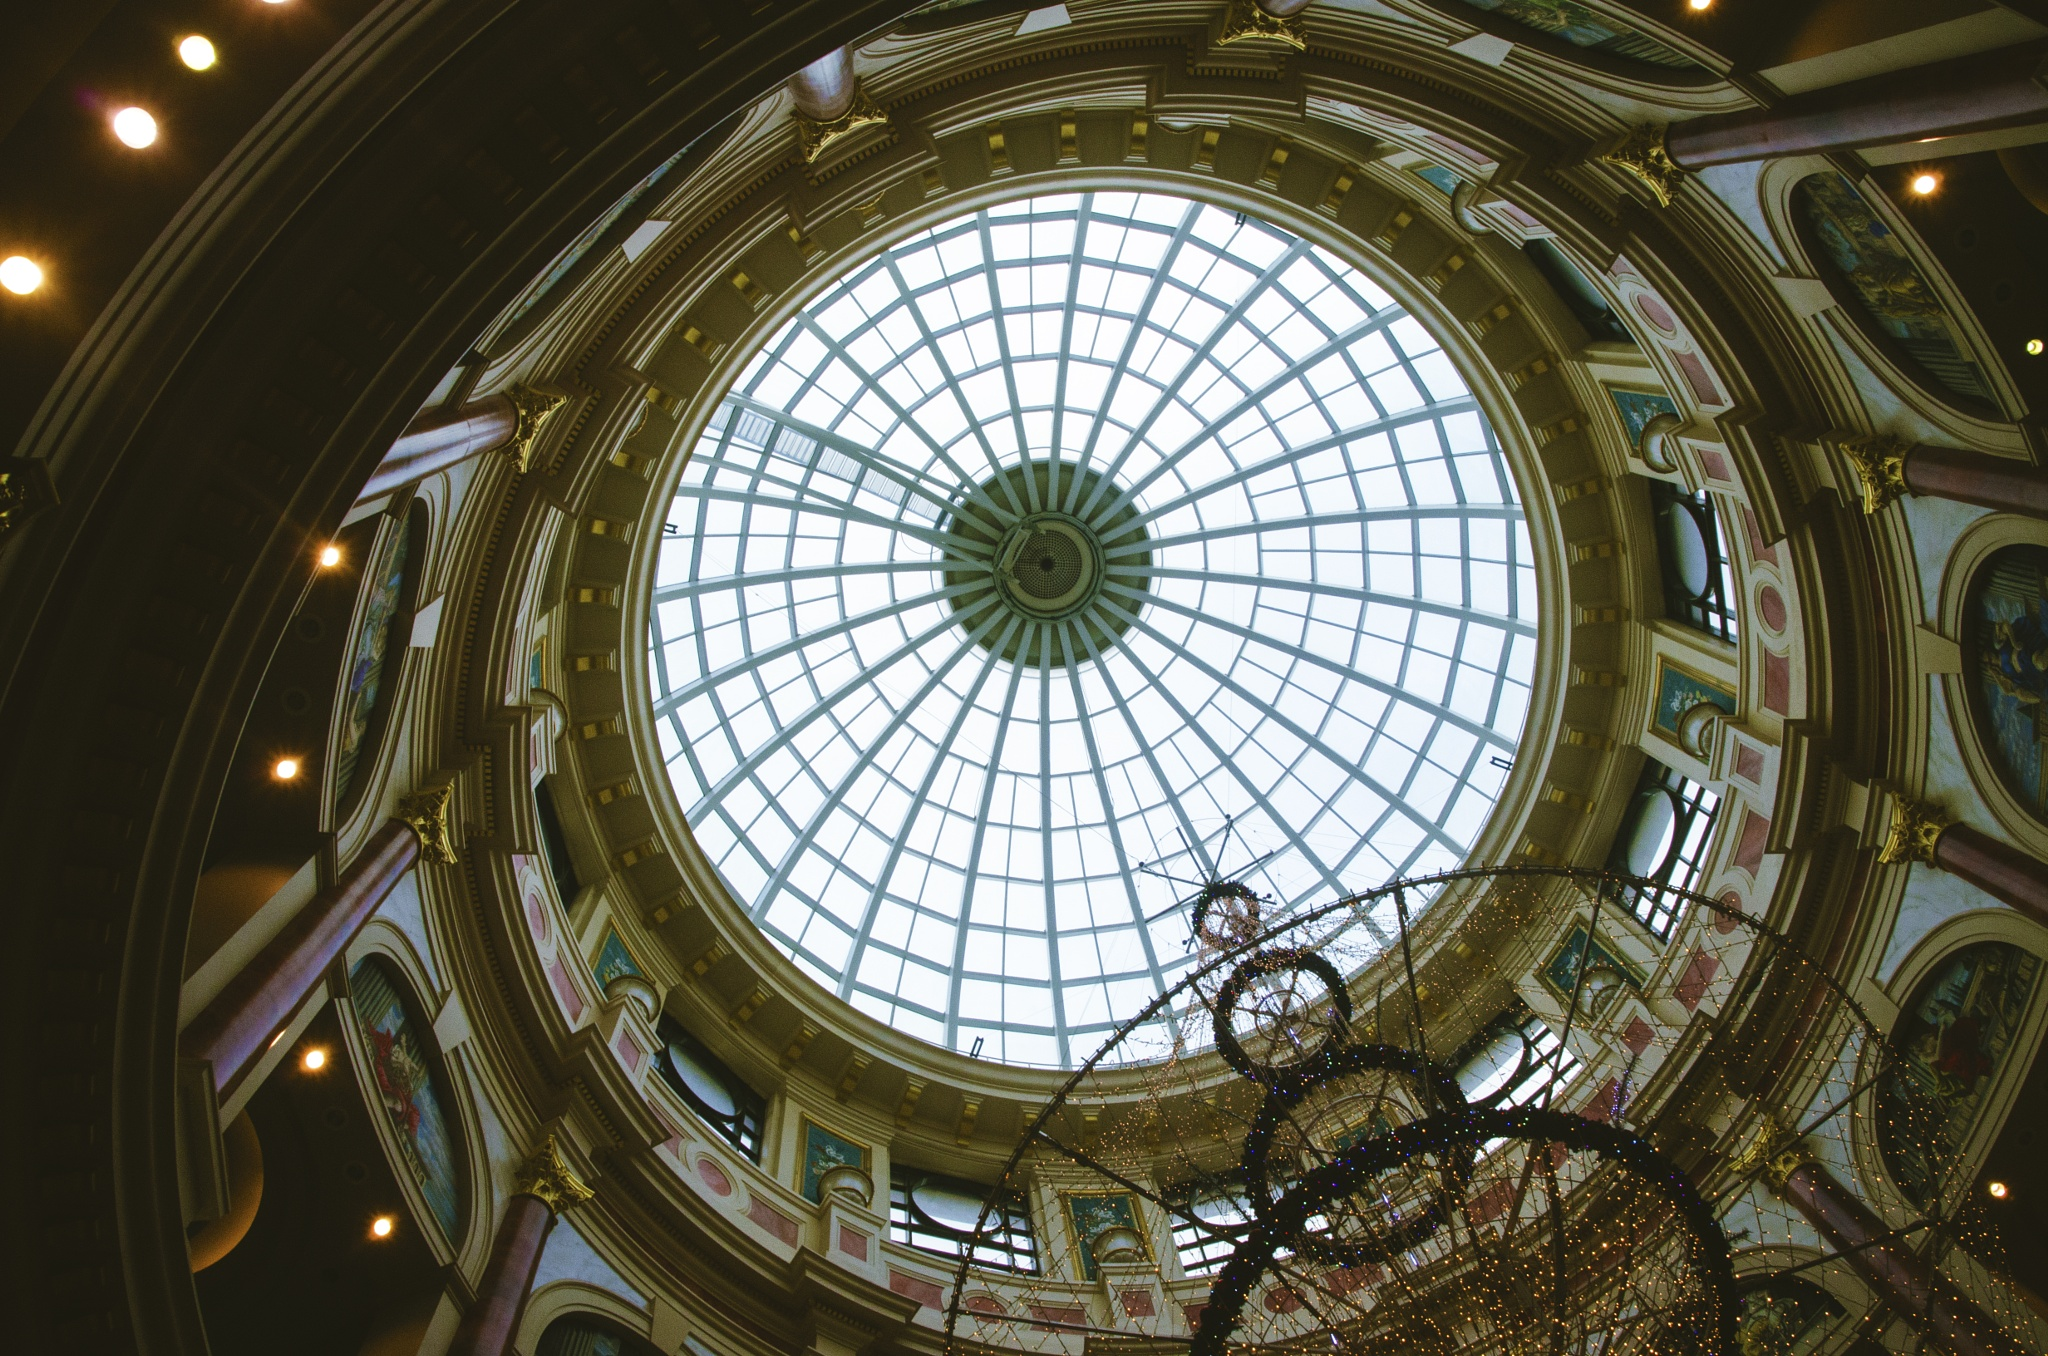 Trafford Ceiling  by Black Hat Photography